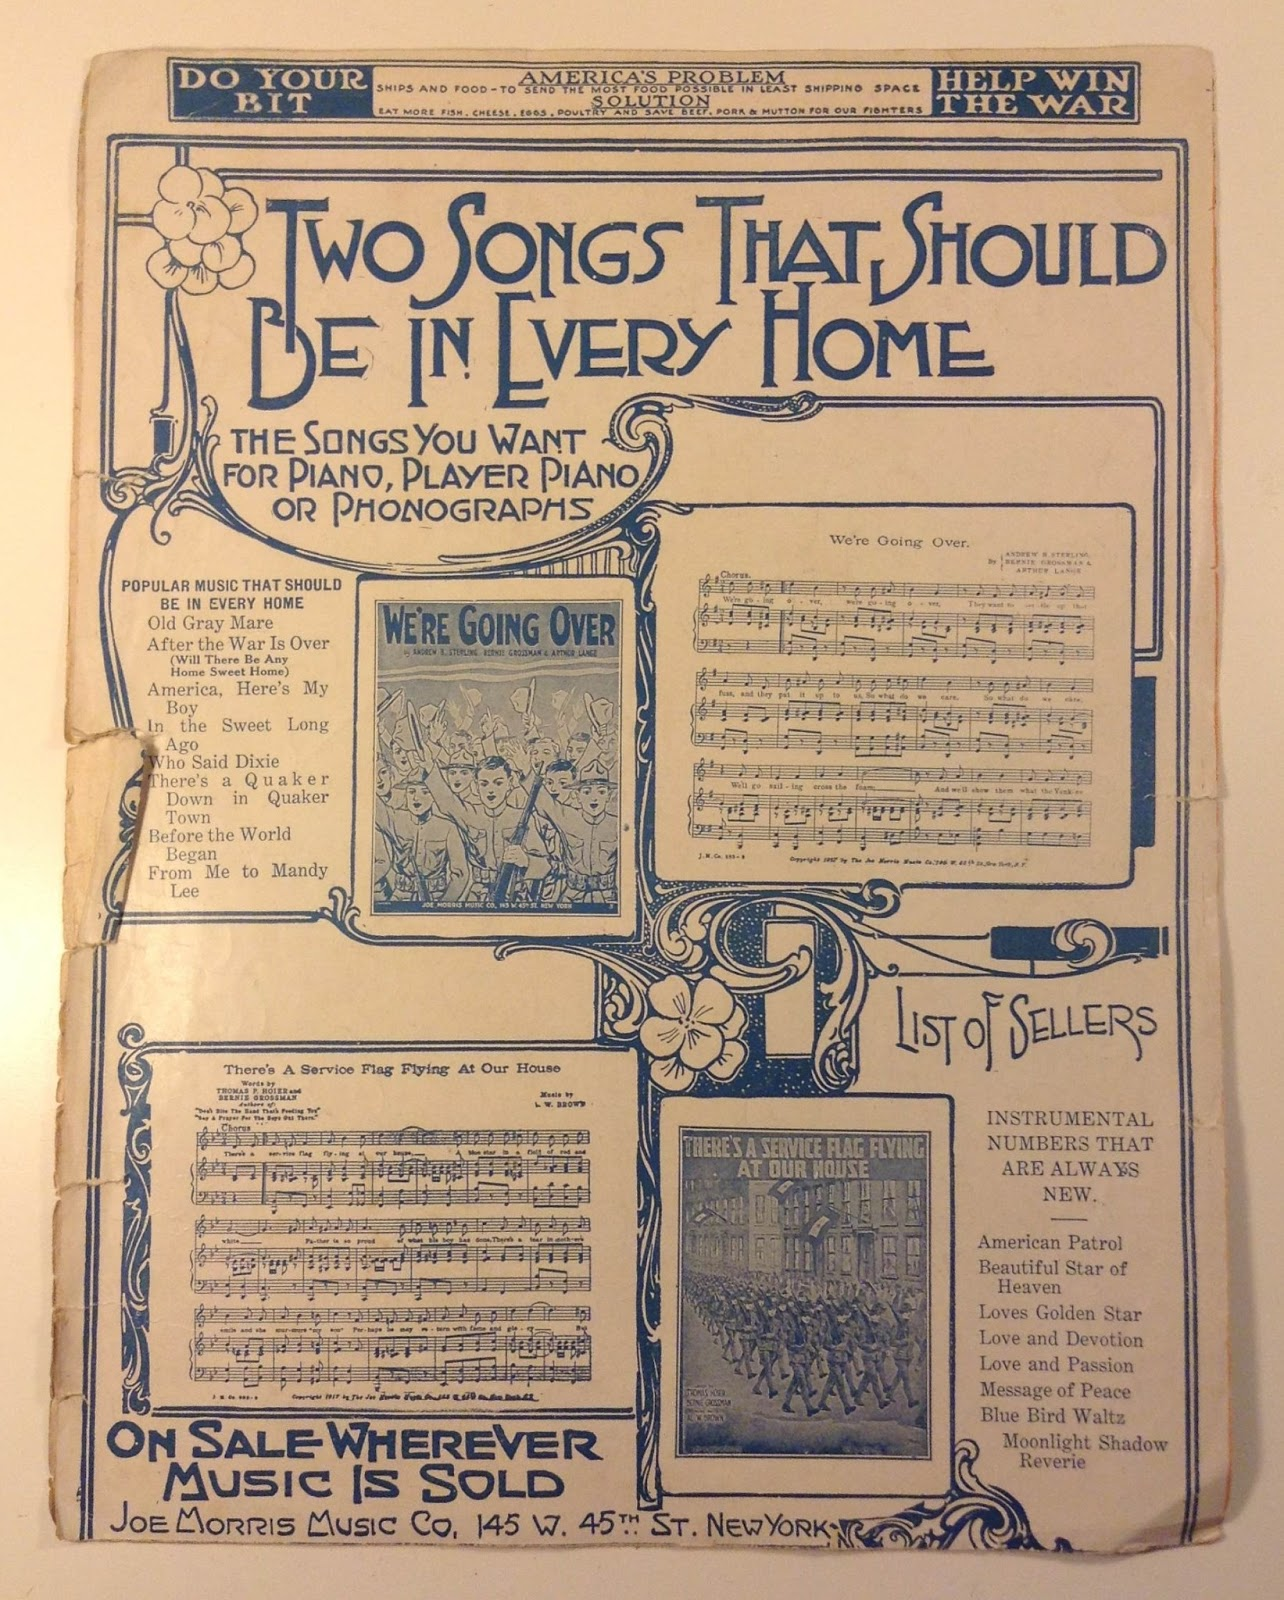 Antique Treasures: In The Sweet Long Ago - Sheet Music